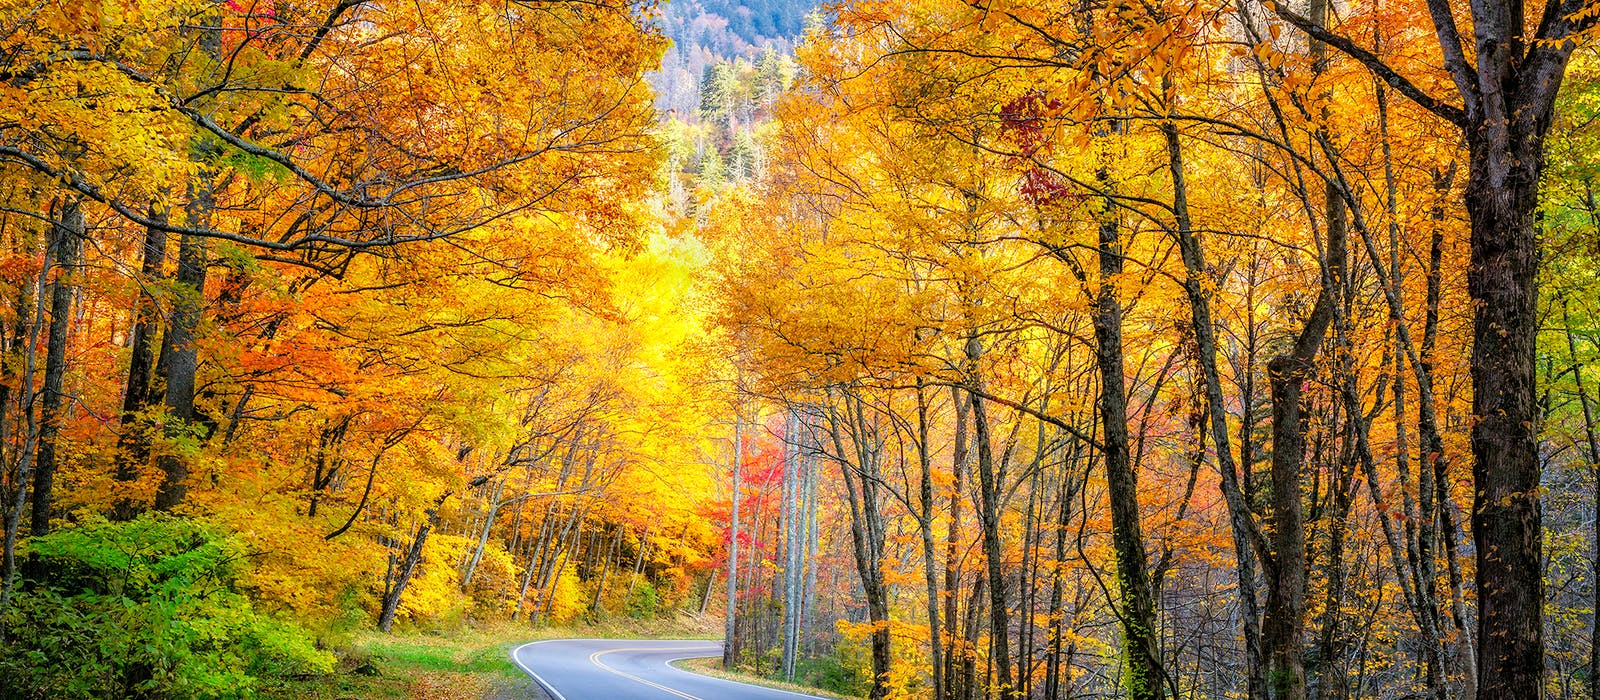 Fall Foliage Map 2020.Fall Foliage Prediction Map 2019 Here S When To Expect Peak